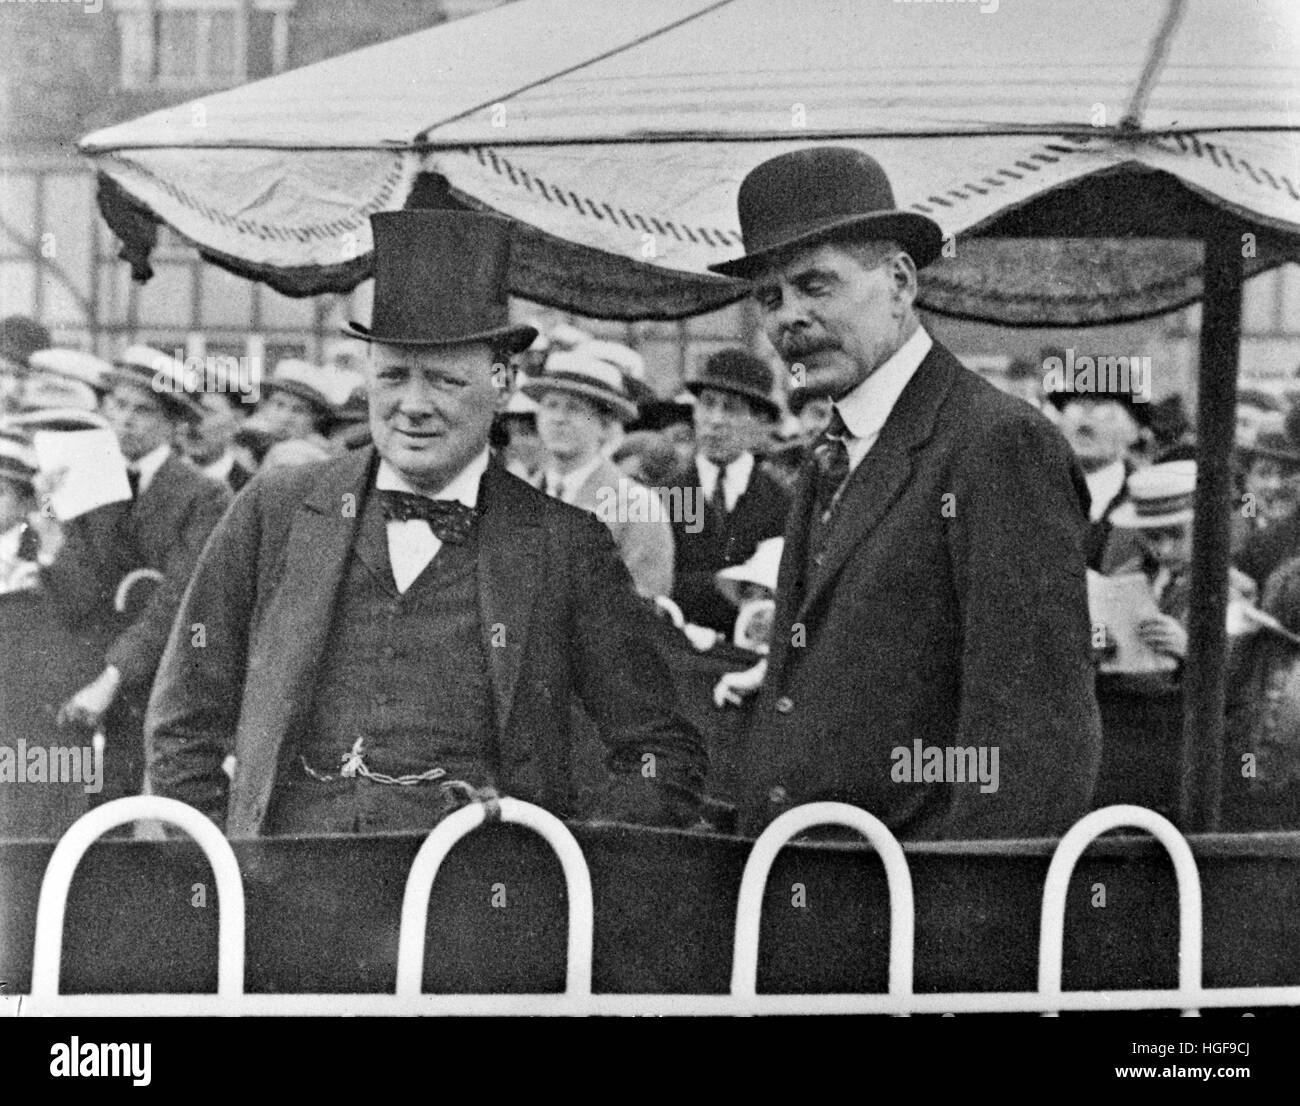 Winston Churchill with Chief of the Air staff, Sir Hugh Trenchard at Hendon Air Display. 8th July 1920 - Stock Image